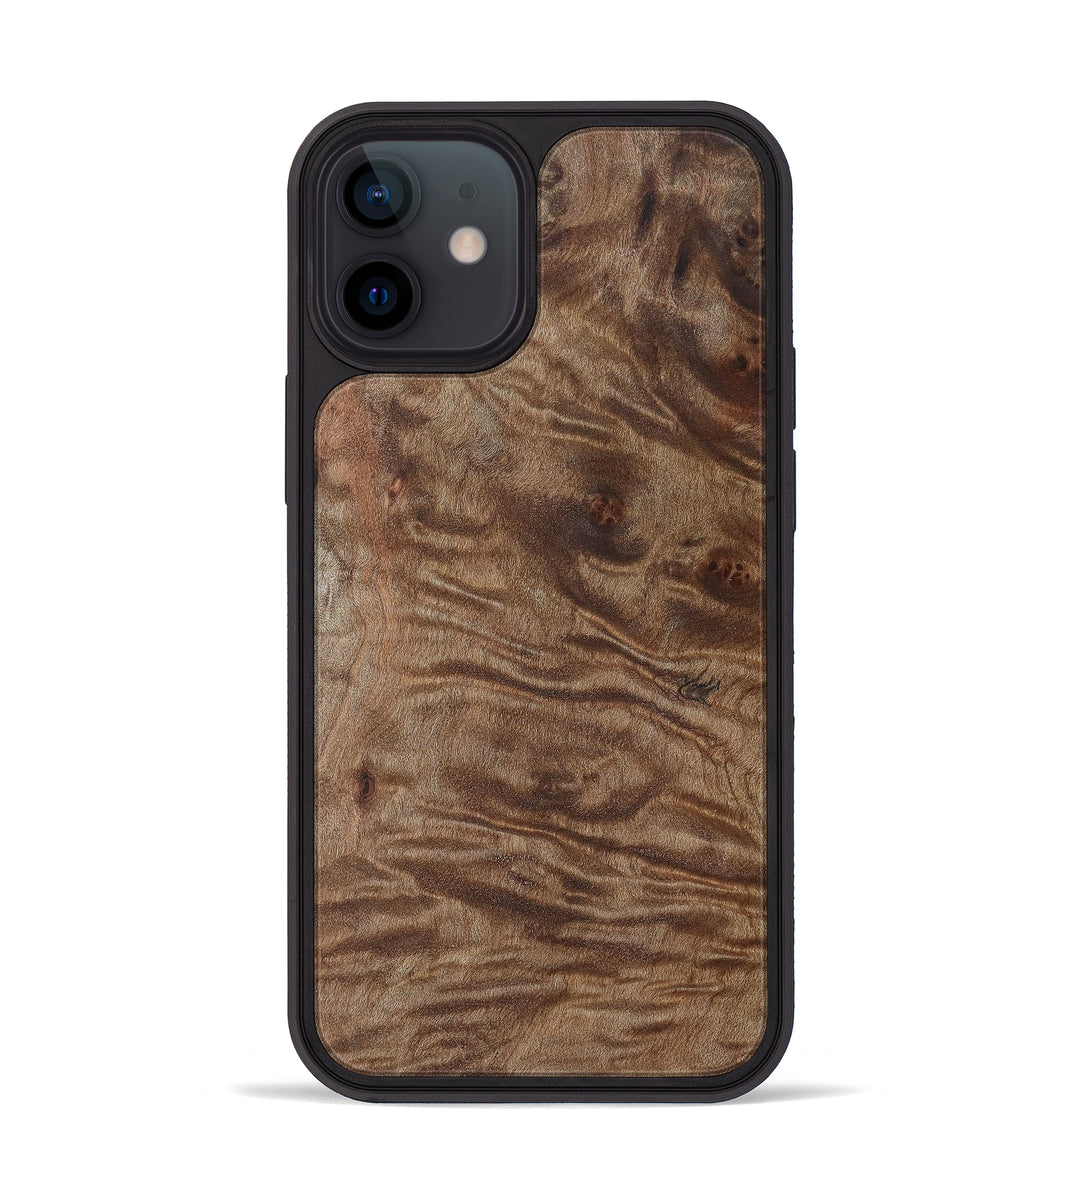 iPhone 12 mini Burl Wood Phone Case - Stephen (Maple Burl, 397434)